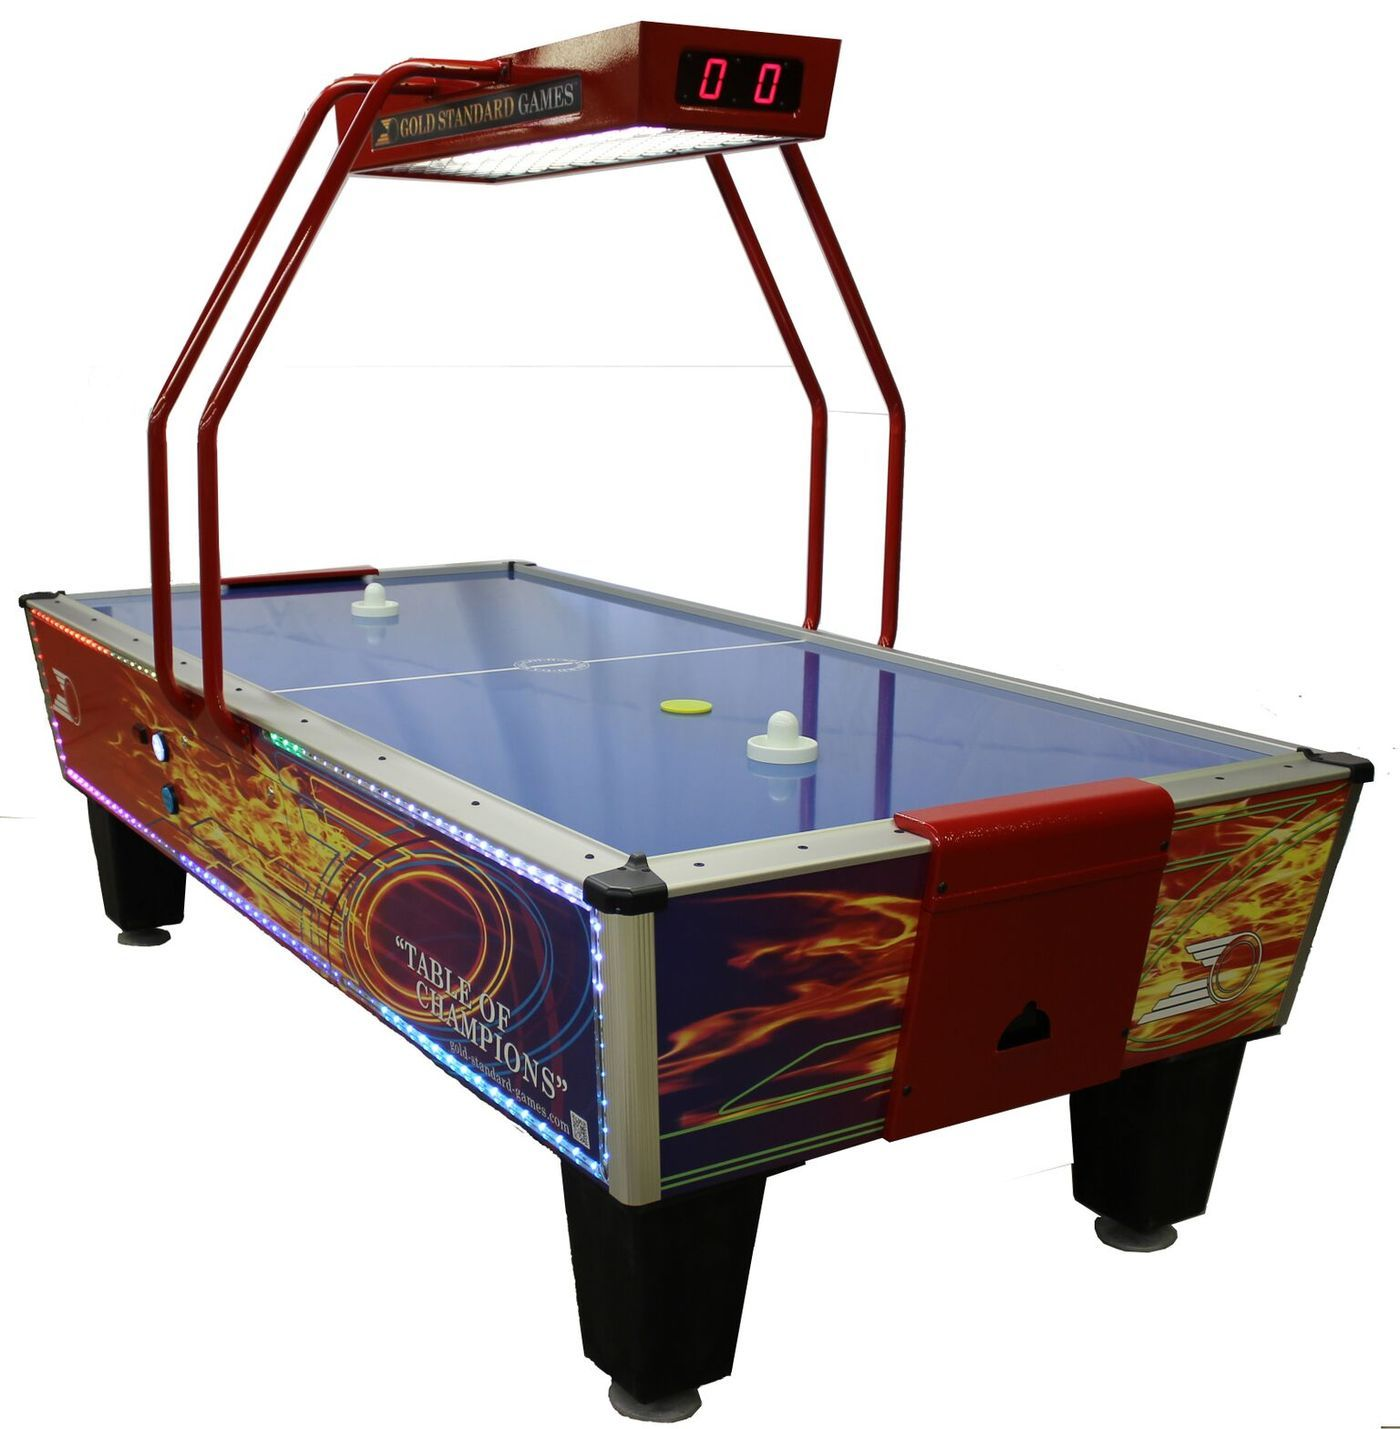 Gold Standard Games Gold Flare Home Elite Air Hockey Table Air Hockey Air Hockey Table Sunnydaze Decor